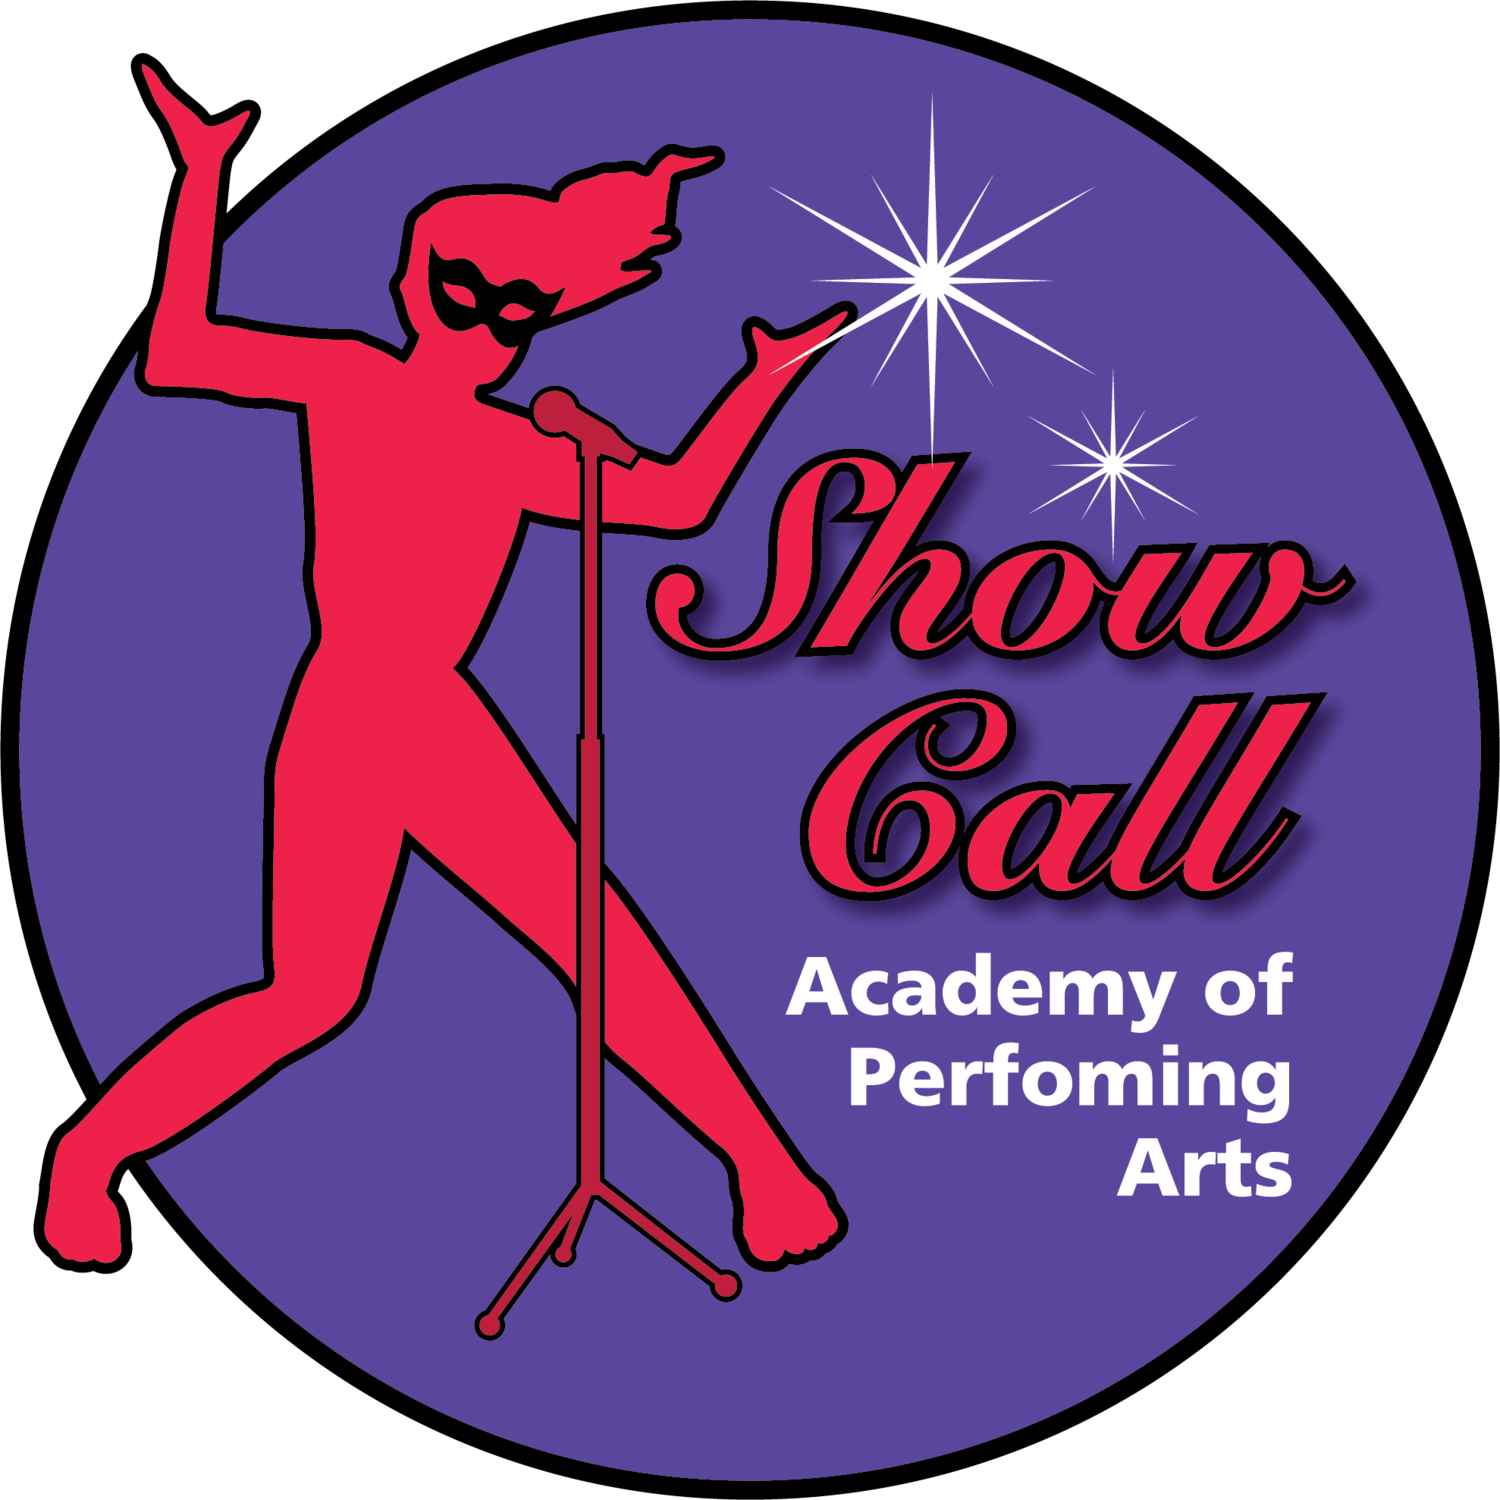 Show Call Academy of Performing Arts